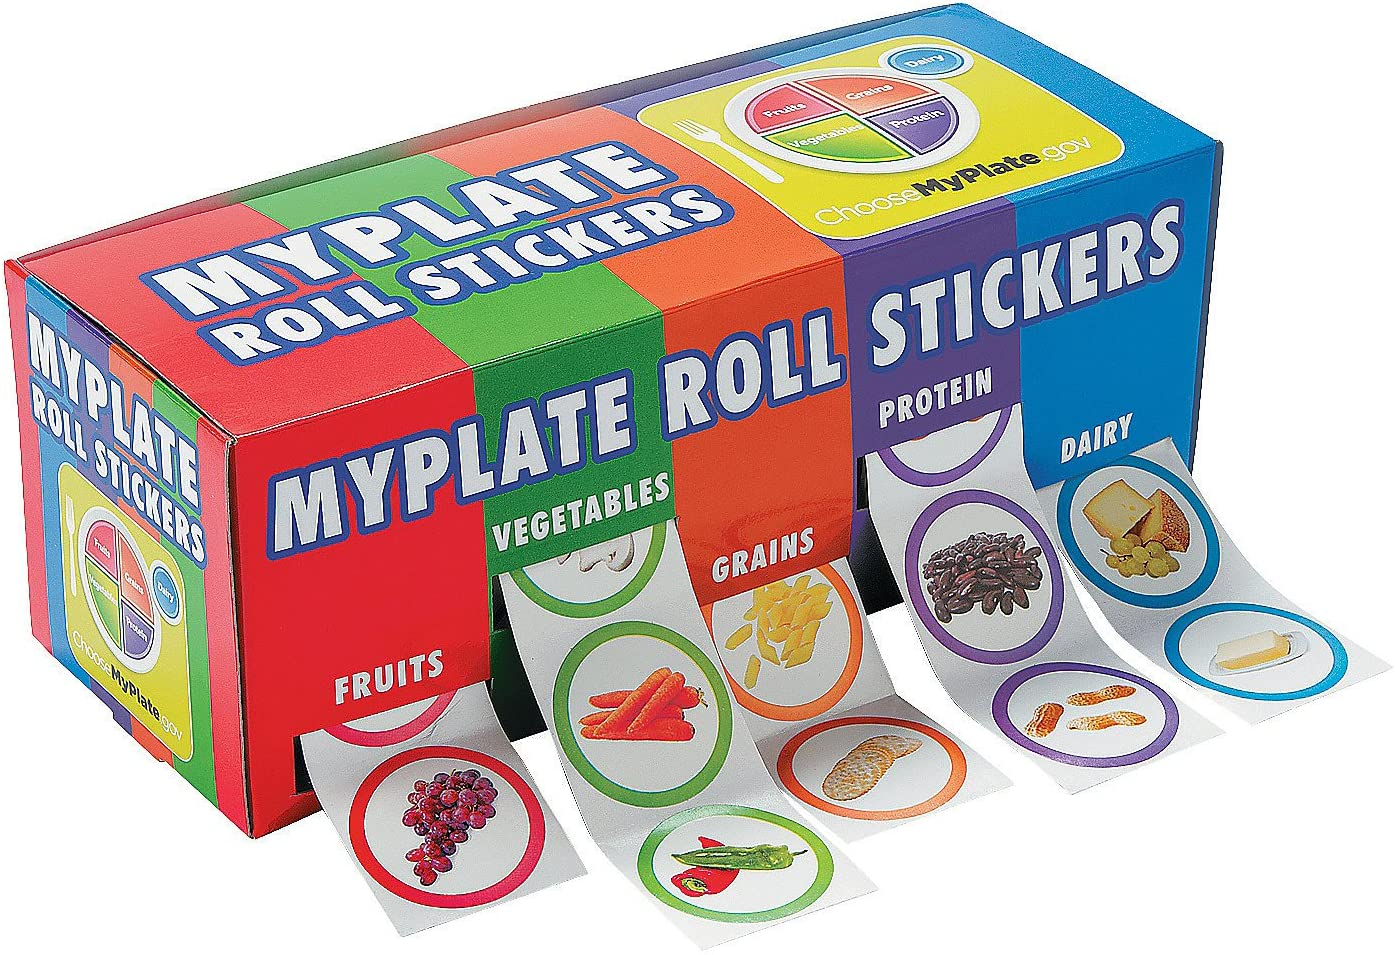 My Plate Roll Stickers - 5 Rolls (100 Stickers per Roll) - Educational and Learning Activities for Kids